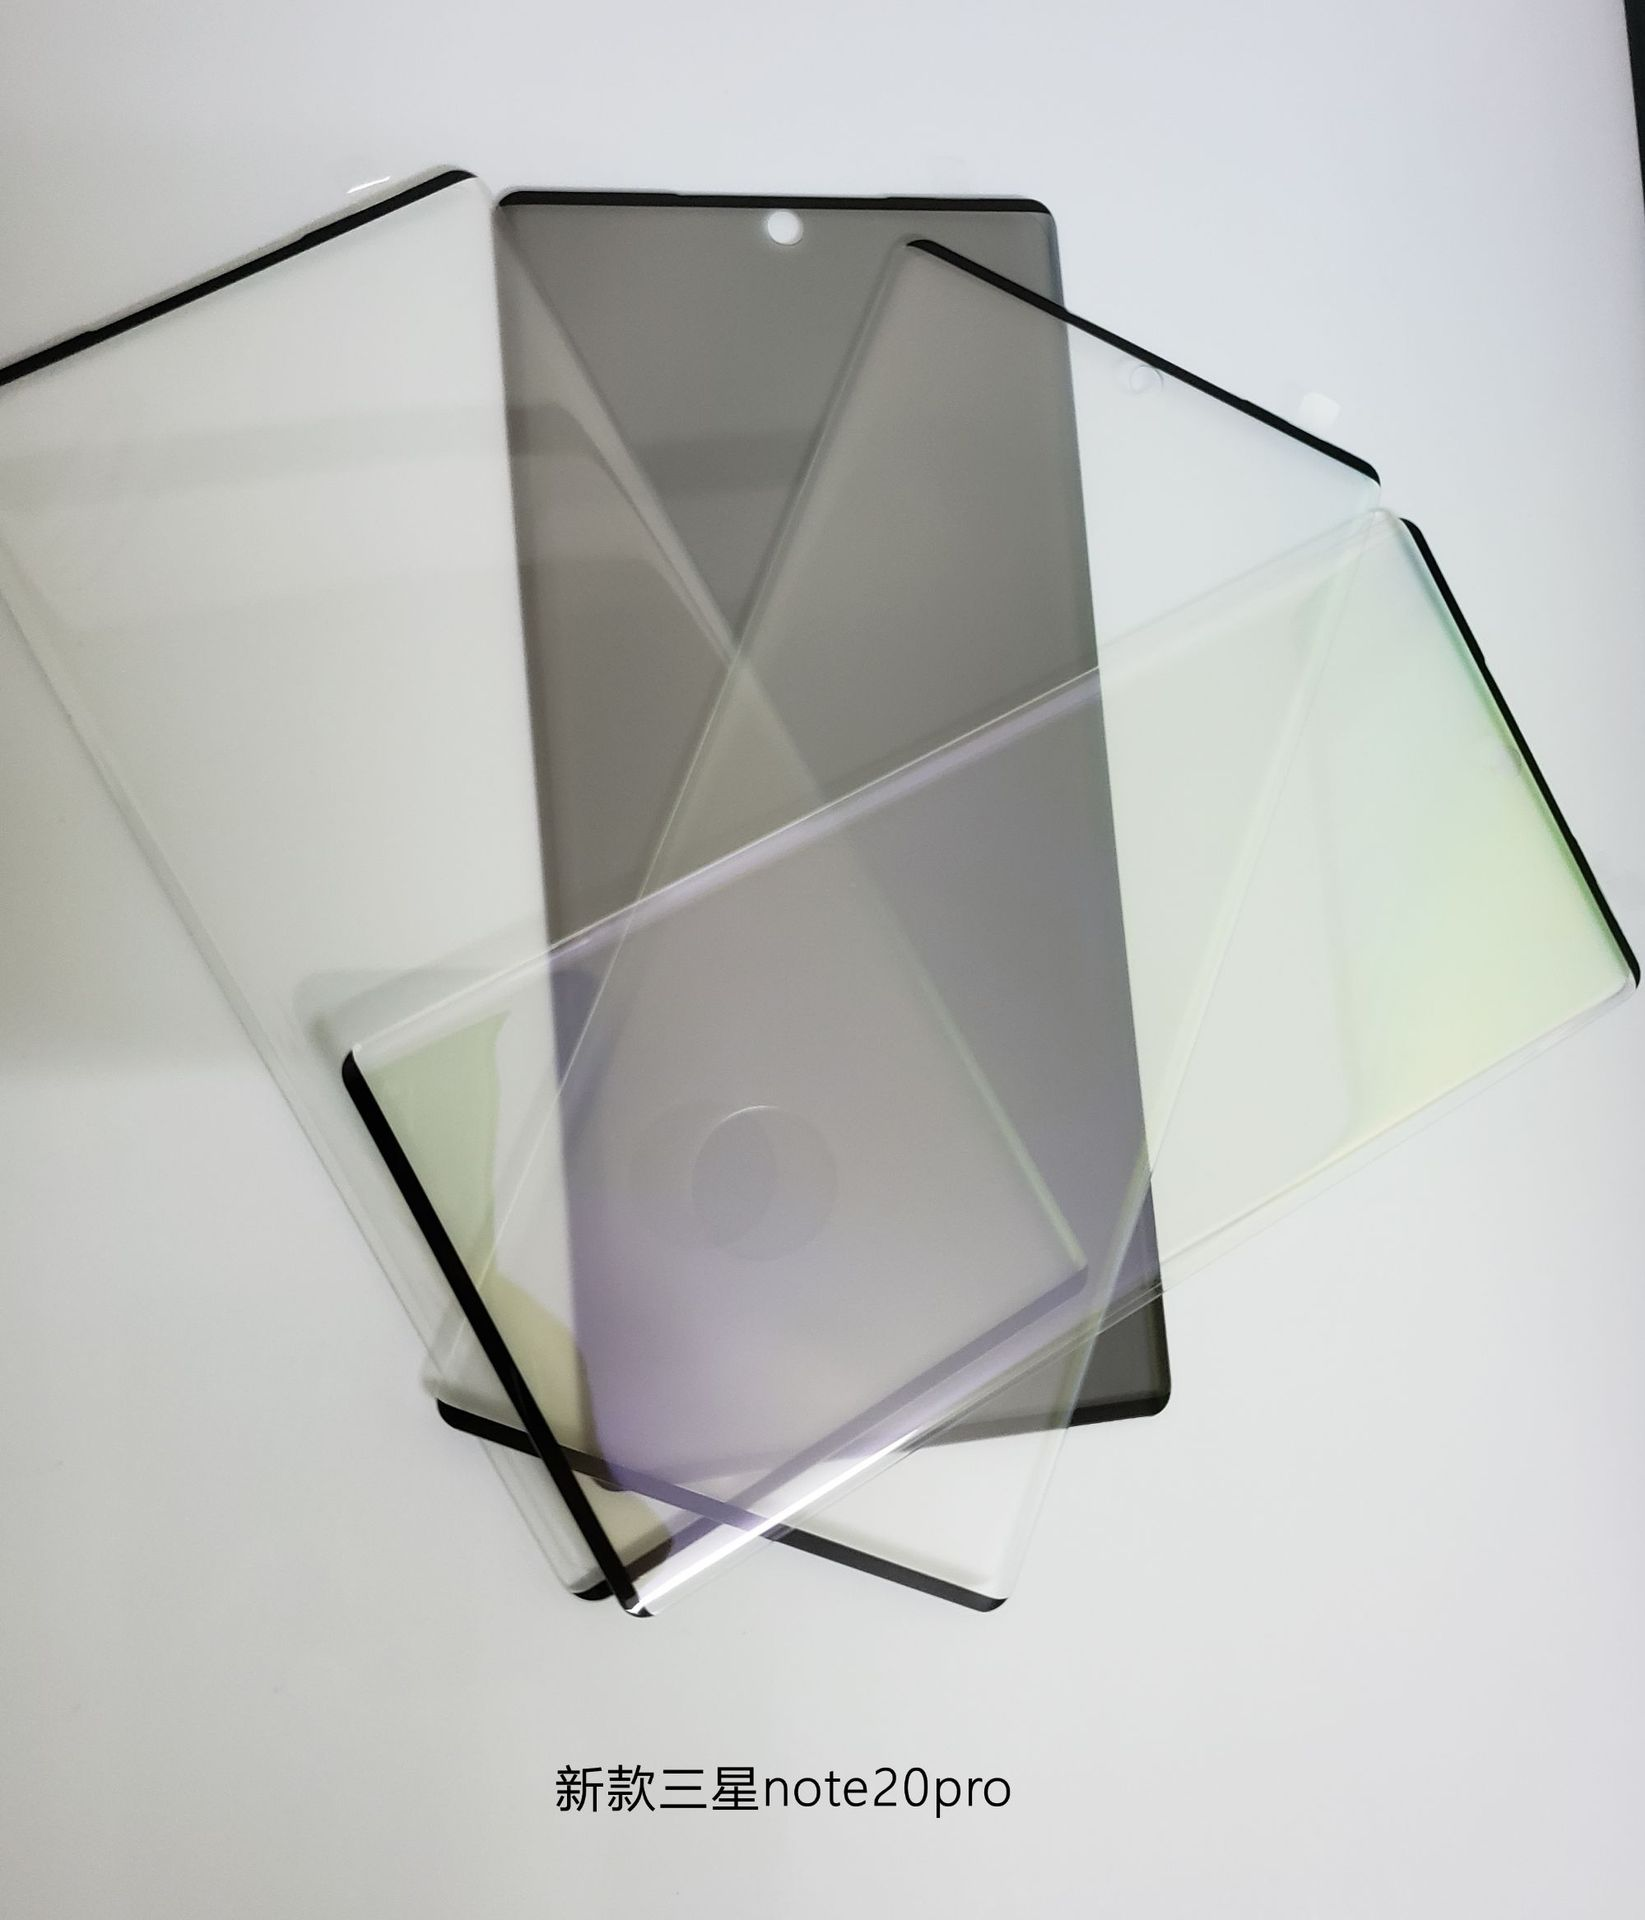 Samsung Galaxy Note 20: new screen protectors appear